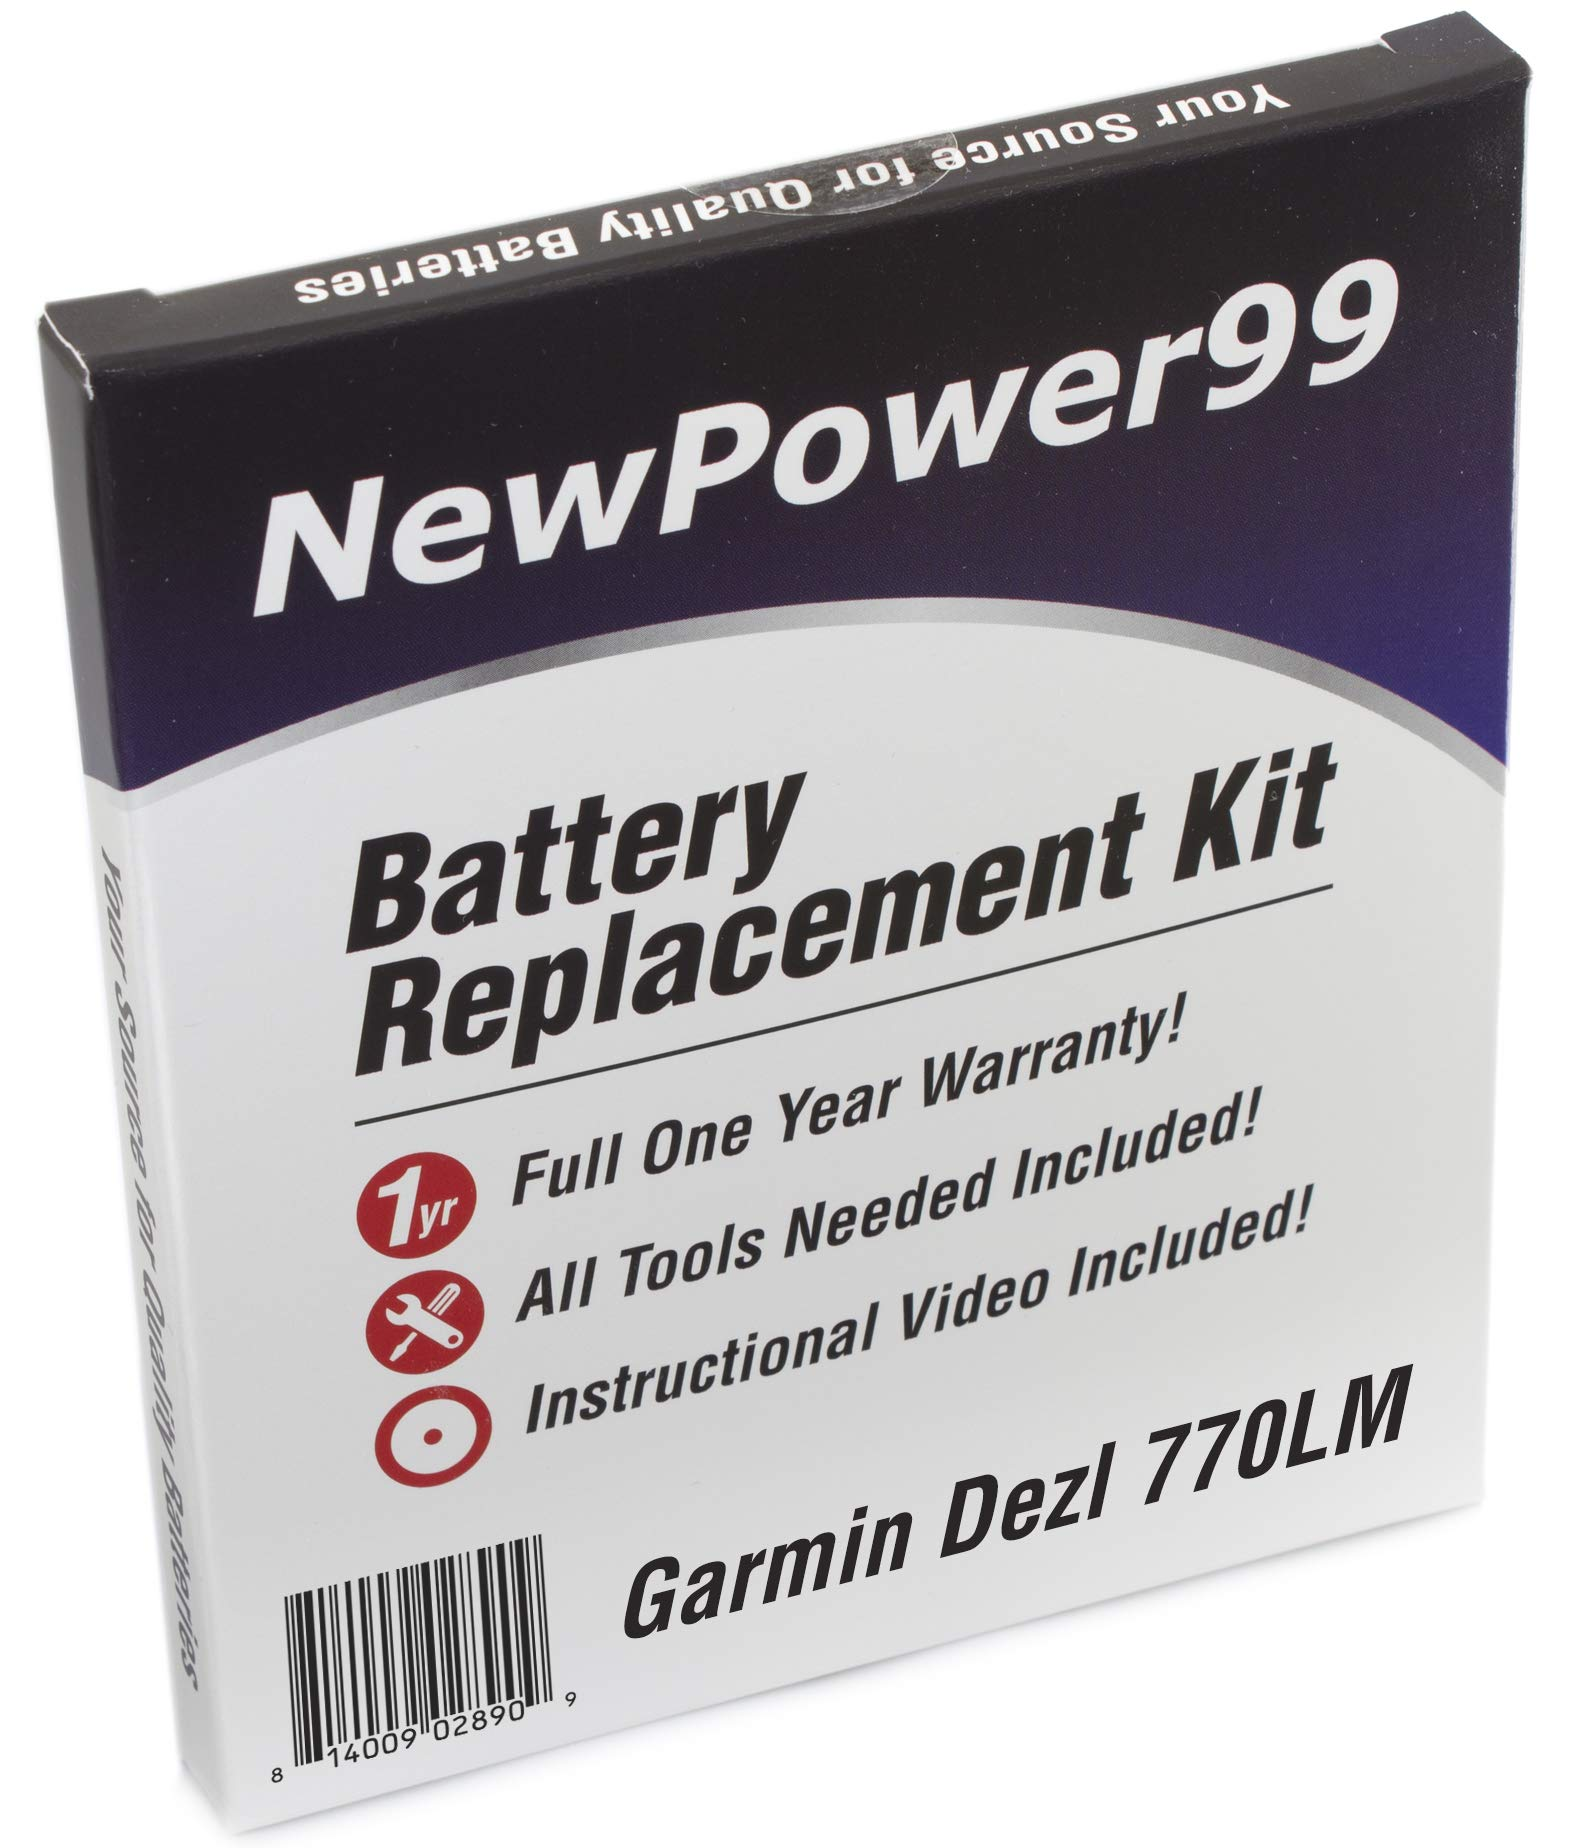 NewPower99 Battery Replacement Kit for Garmin Dezl 770LM with Installation Video, Tools, and Extended Life Battery.